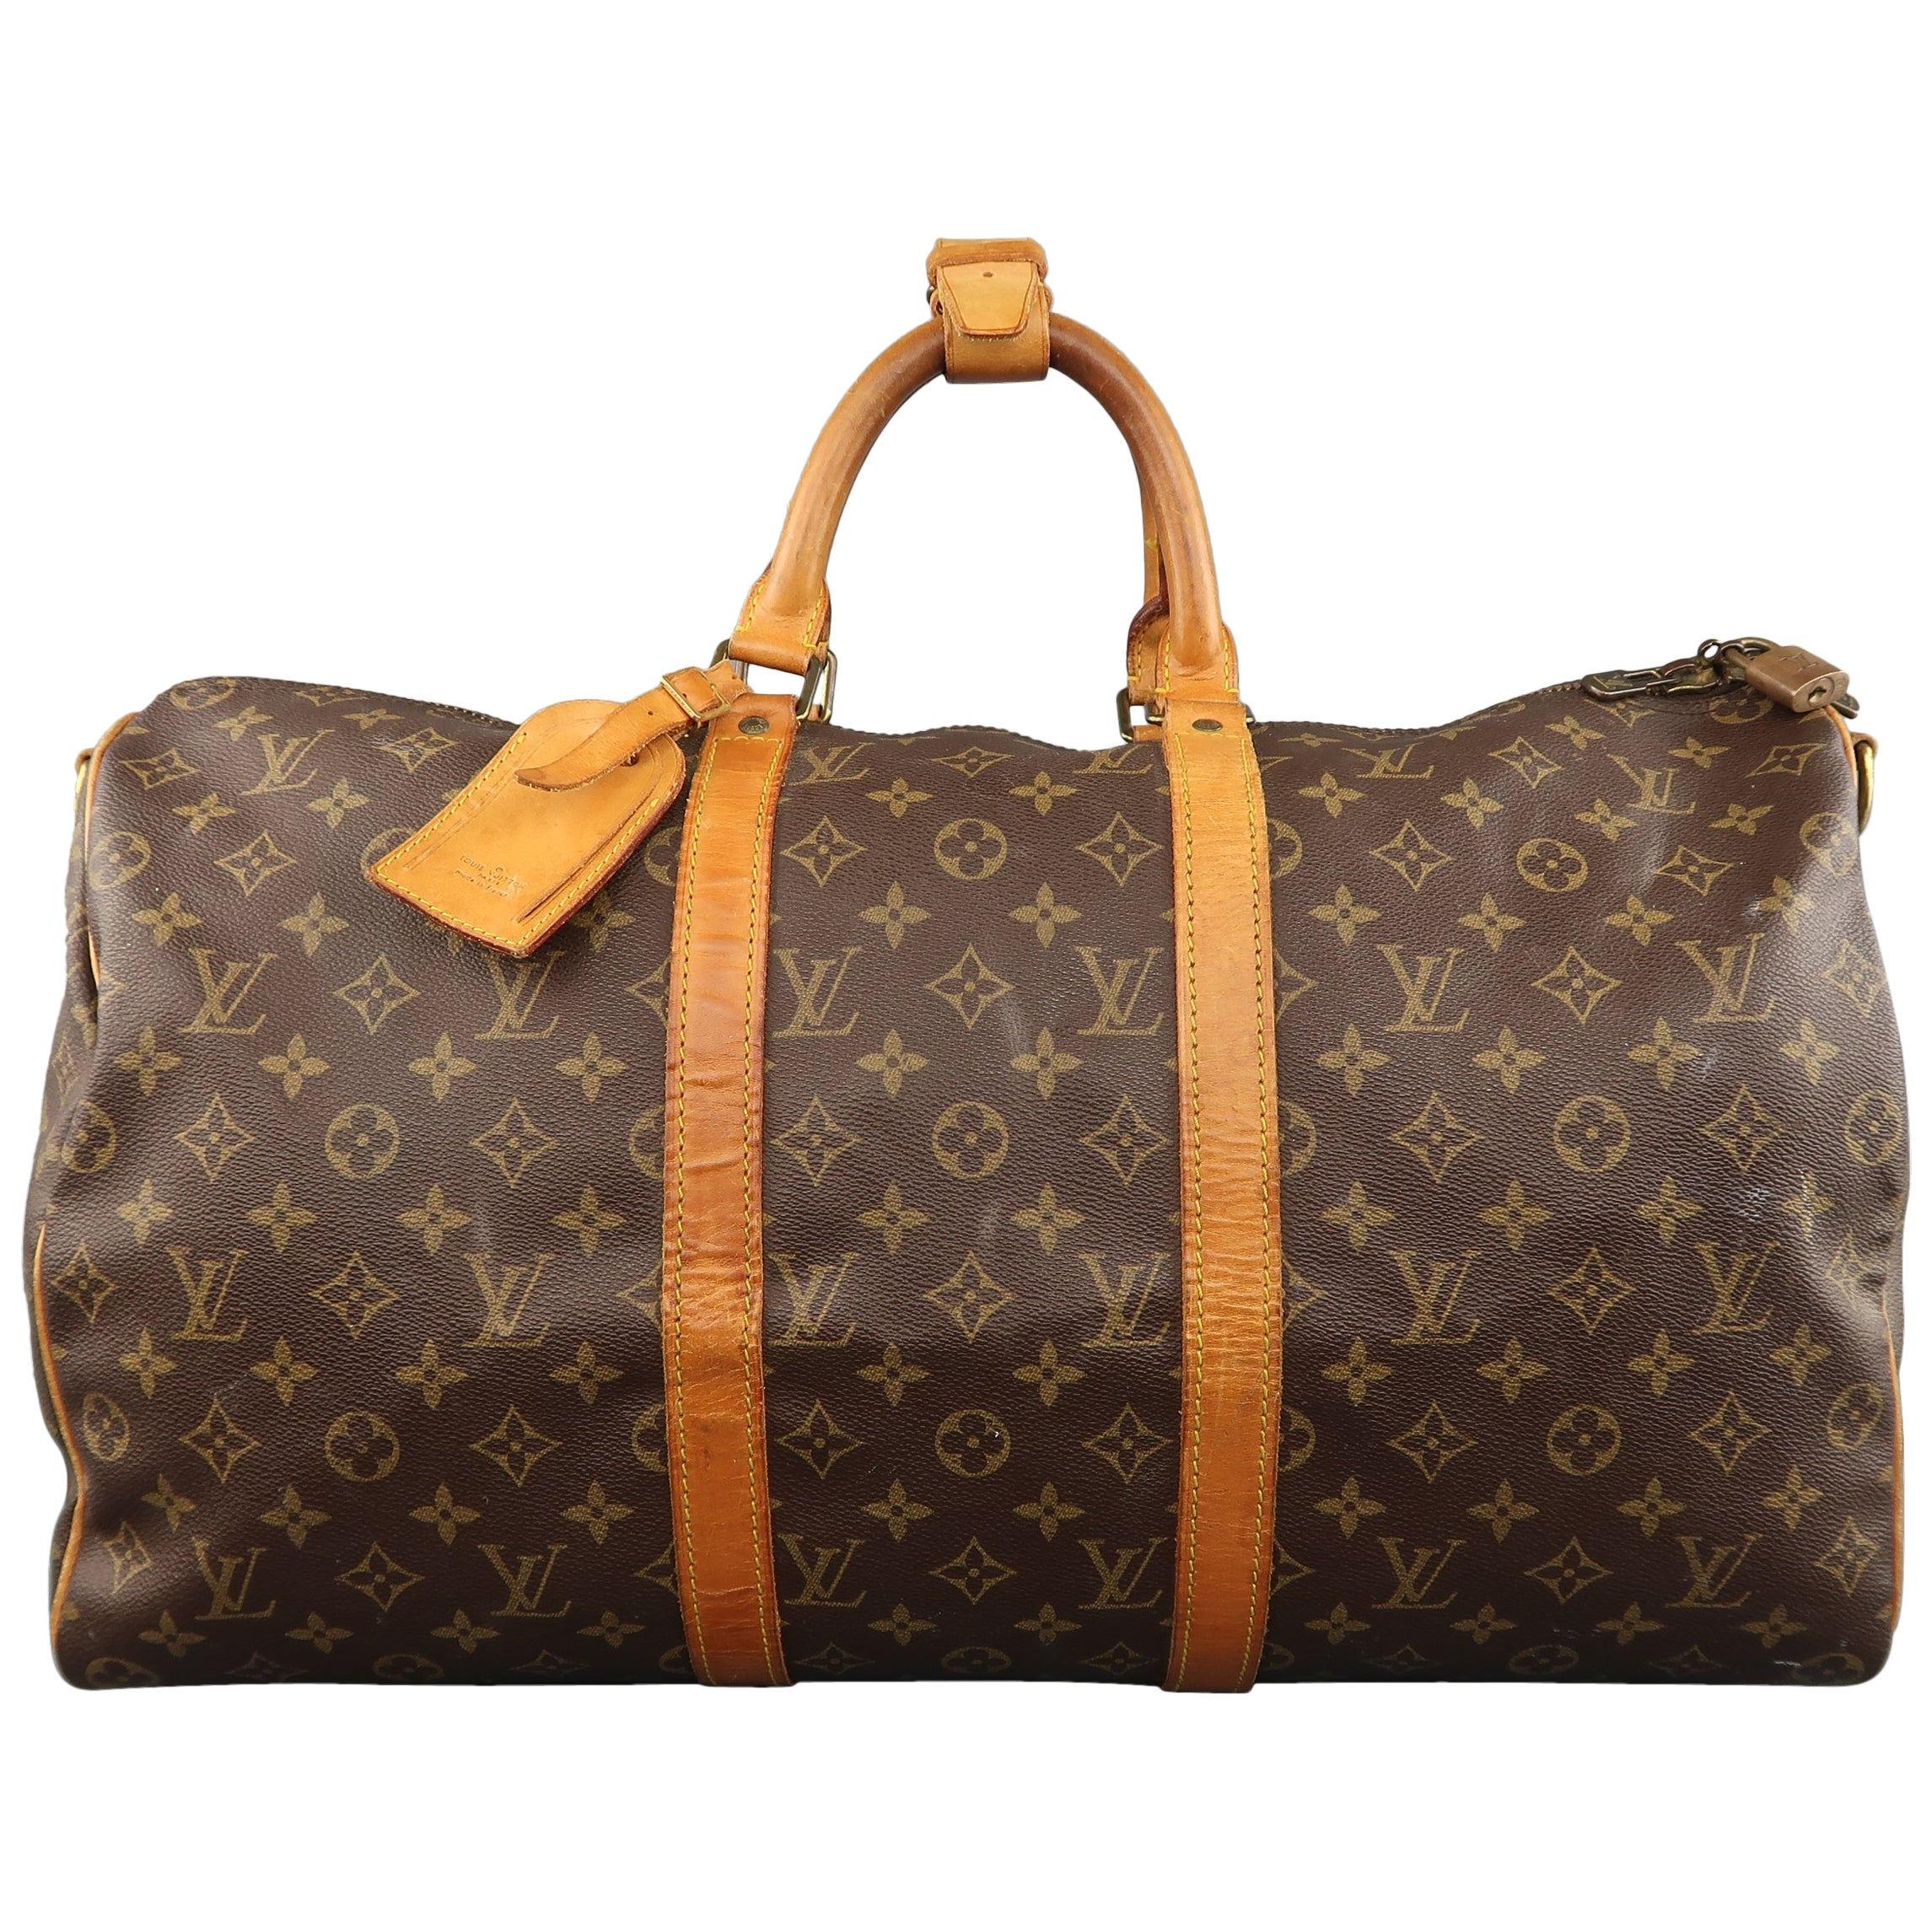 Vintage LOUIS VUITTON KEEPALL 50 Bag Brown Monogram and Leather Duffel Bag  at 1stdibs f6a205b9f5022